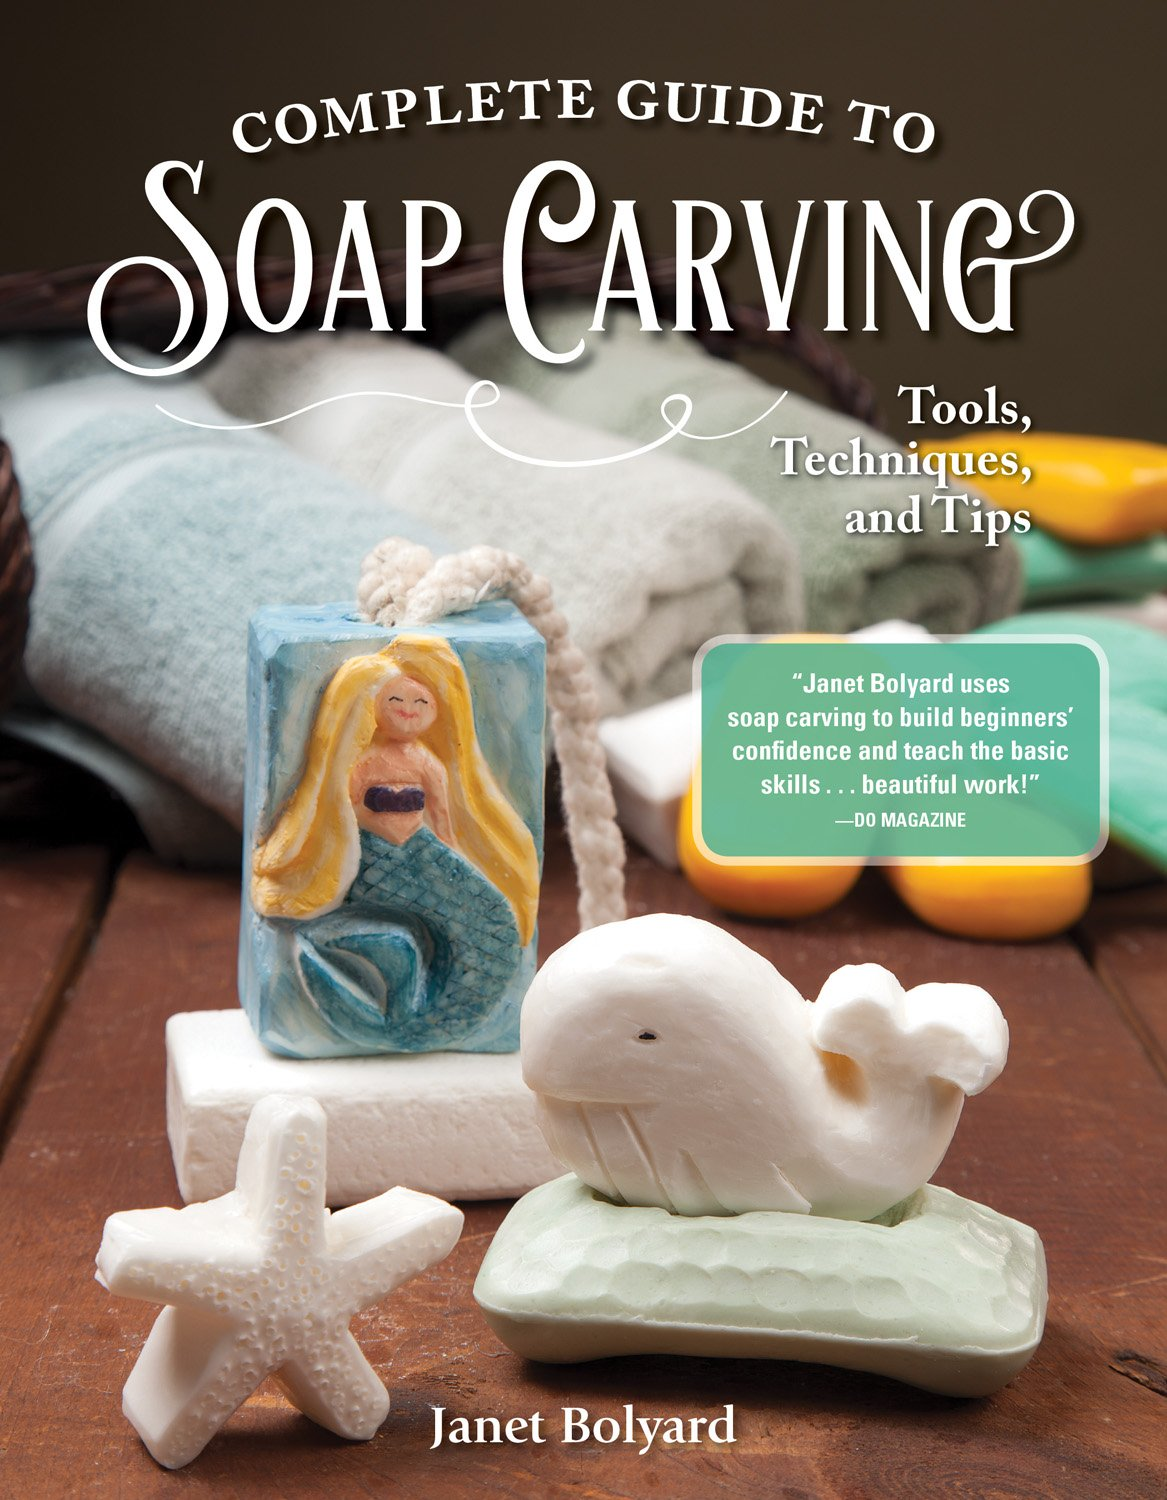 Complete Guide to Soap Carving: Tools, Techniques, and Tips (Fox Chapel Publishing) 26 Step-by-Step Projects & Comprehensive Guide, from Basic Methods for Beginners to Advanced Techniques for Artists Paperback – September 10, 2018 Janet Bolyard 1565239